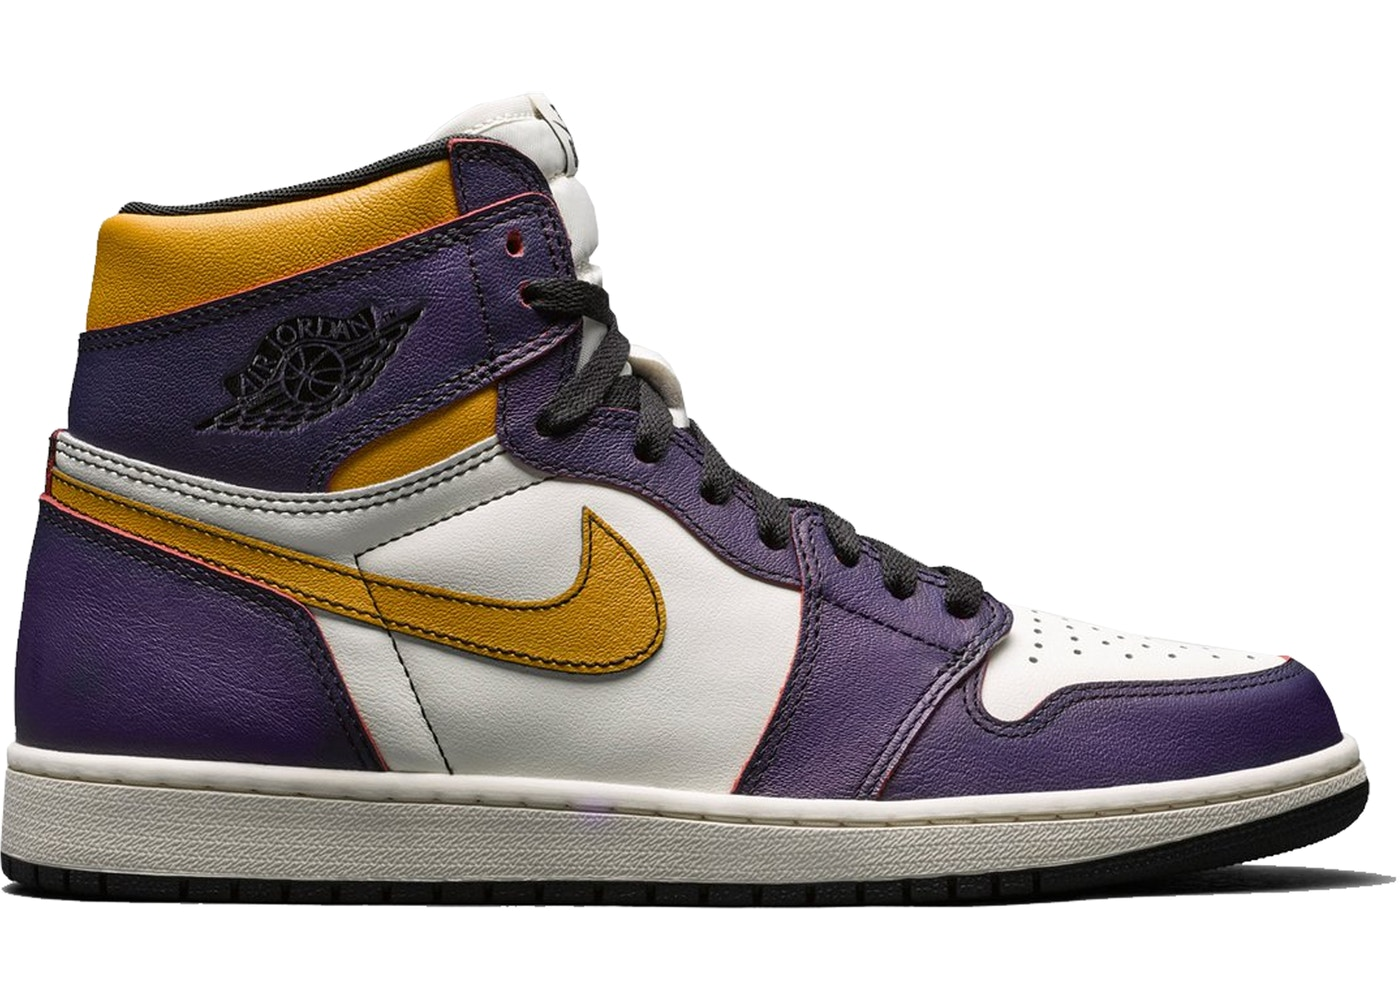 fbac39eb6efcd Jordan 1 Retro High OG Defiant SB Lakers